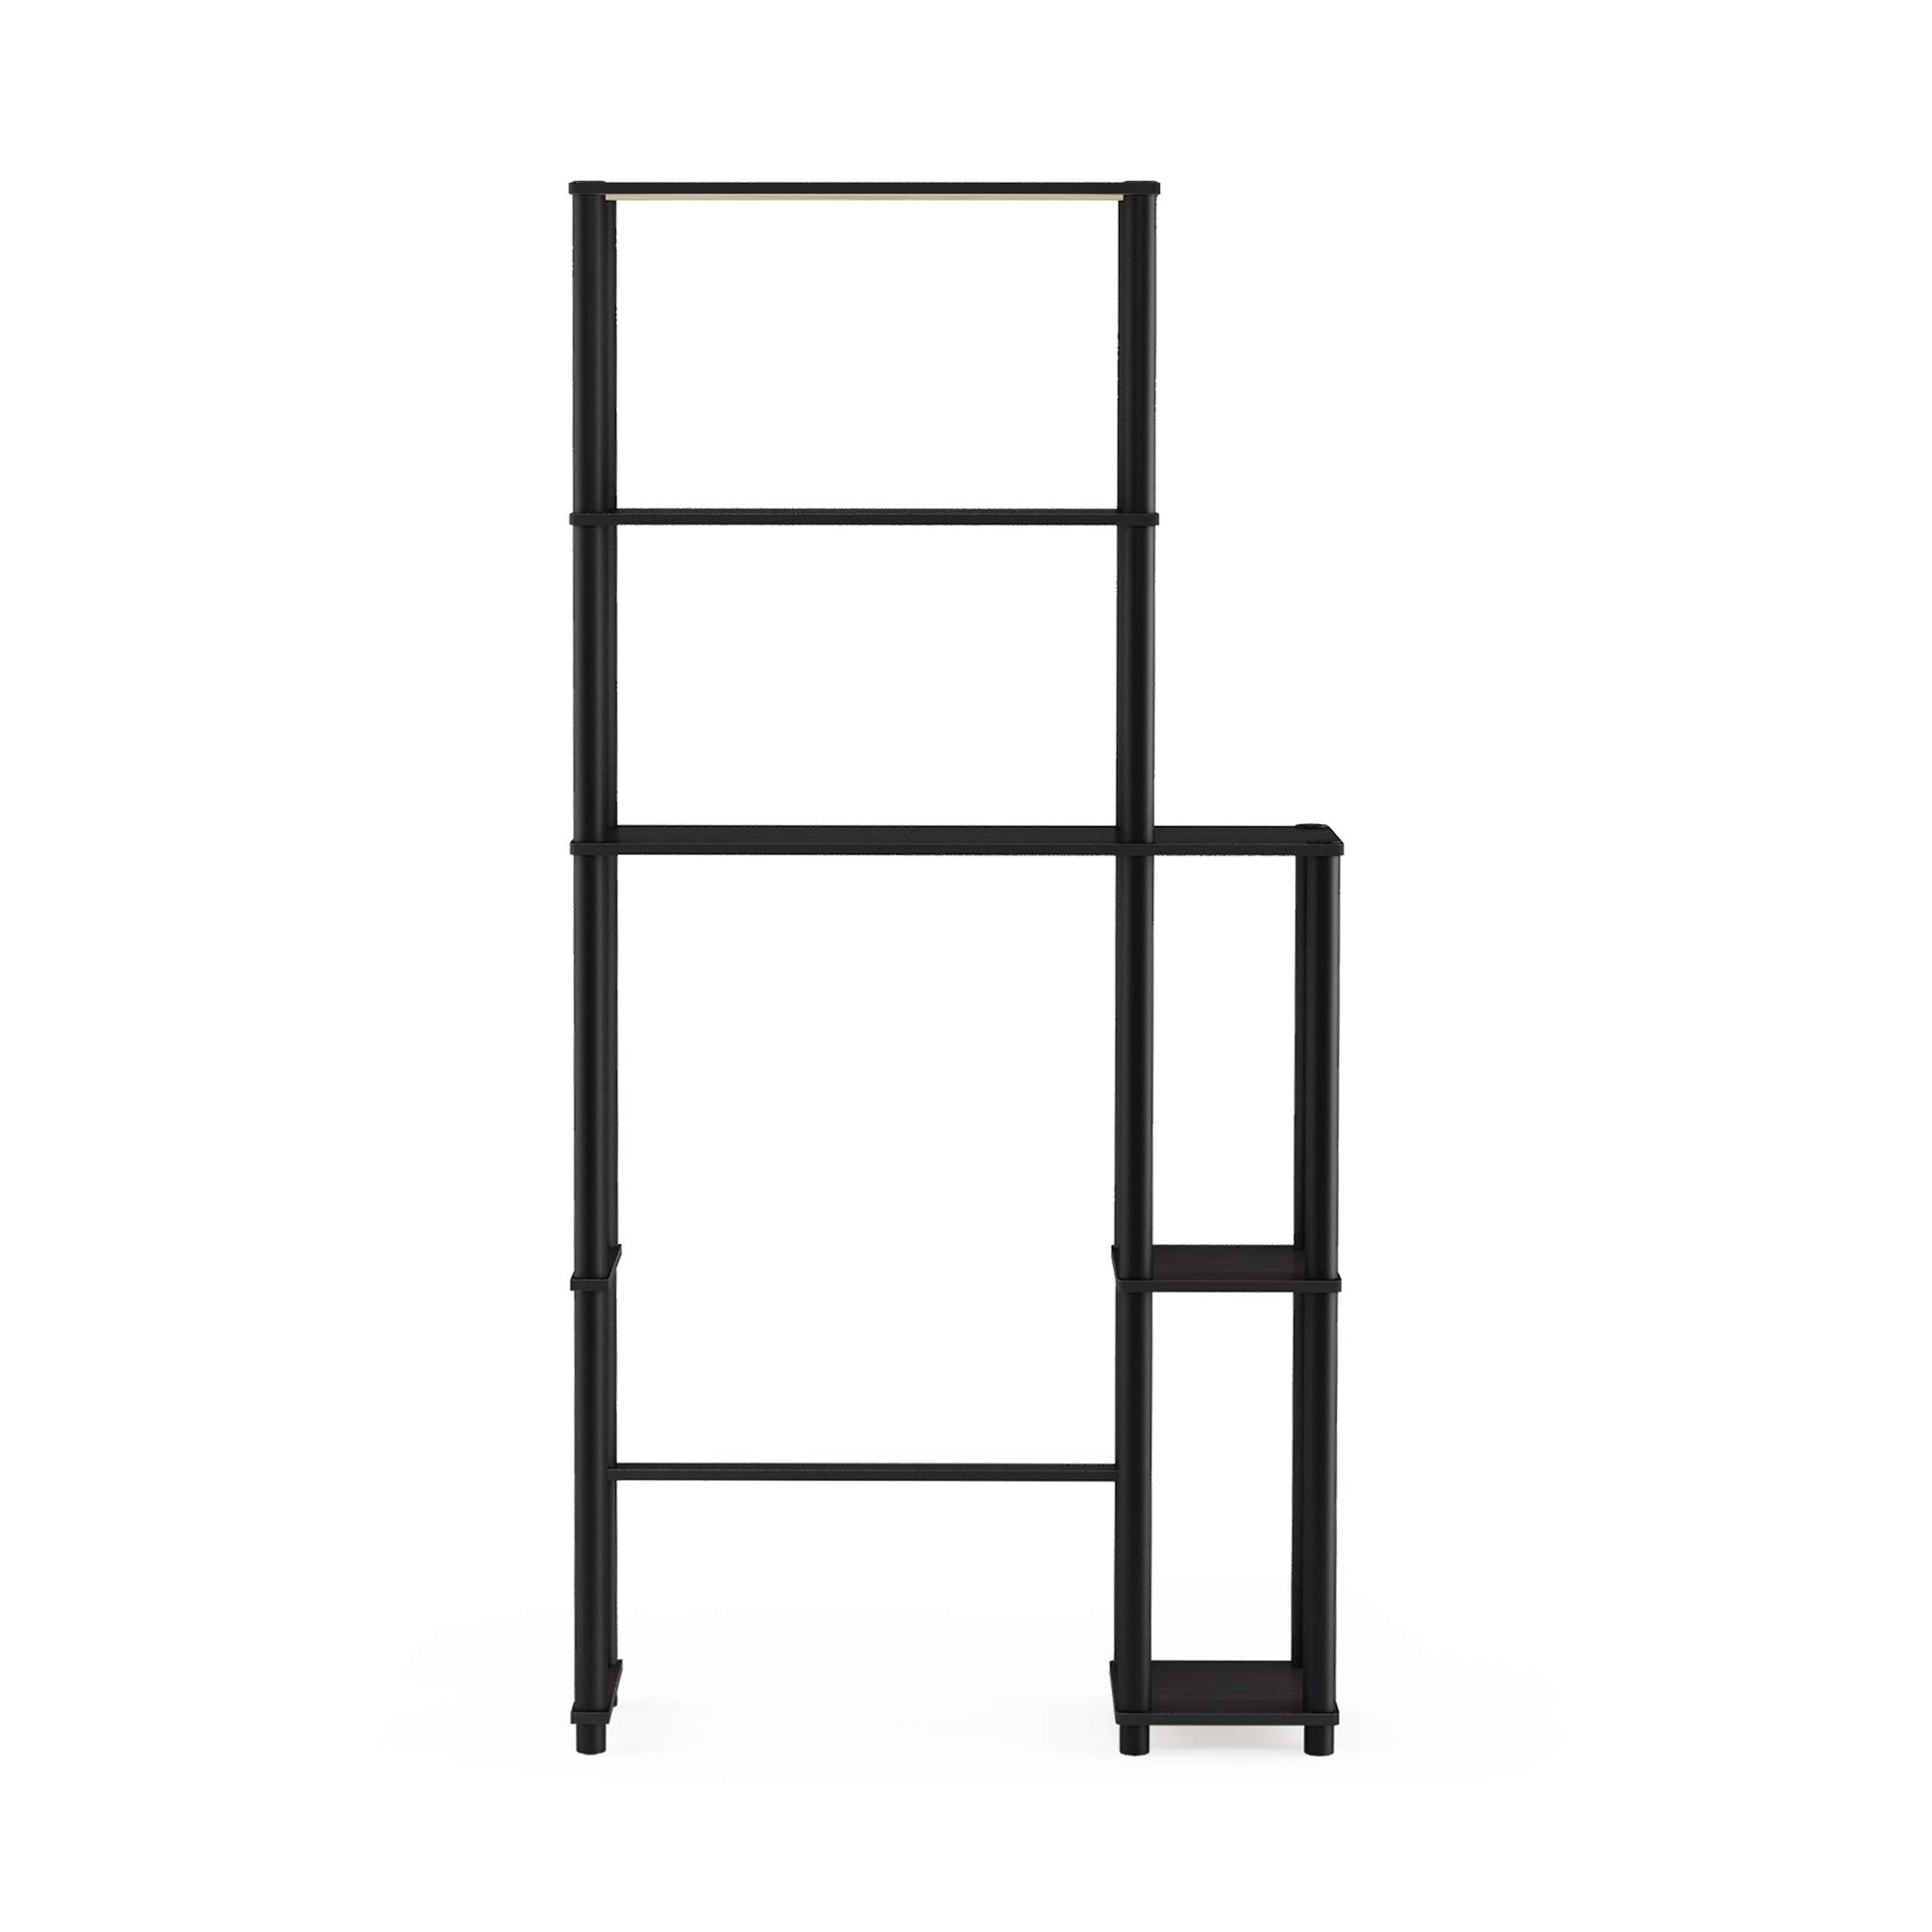 Furinno  Turn-N-Tube with 5 Shelves Toilet Space Saver, Espresso/Black by Furinno